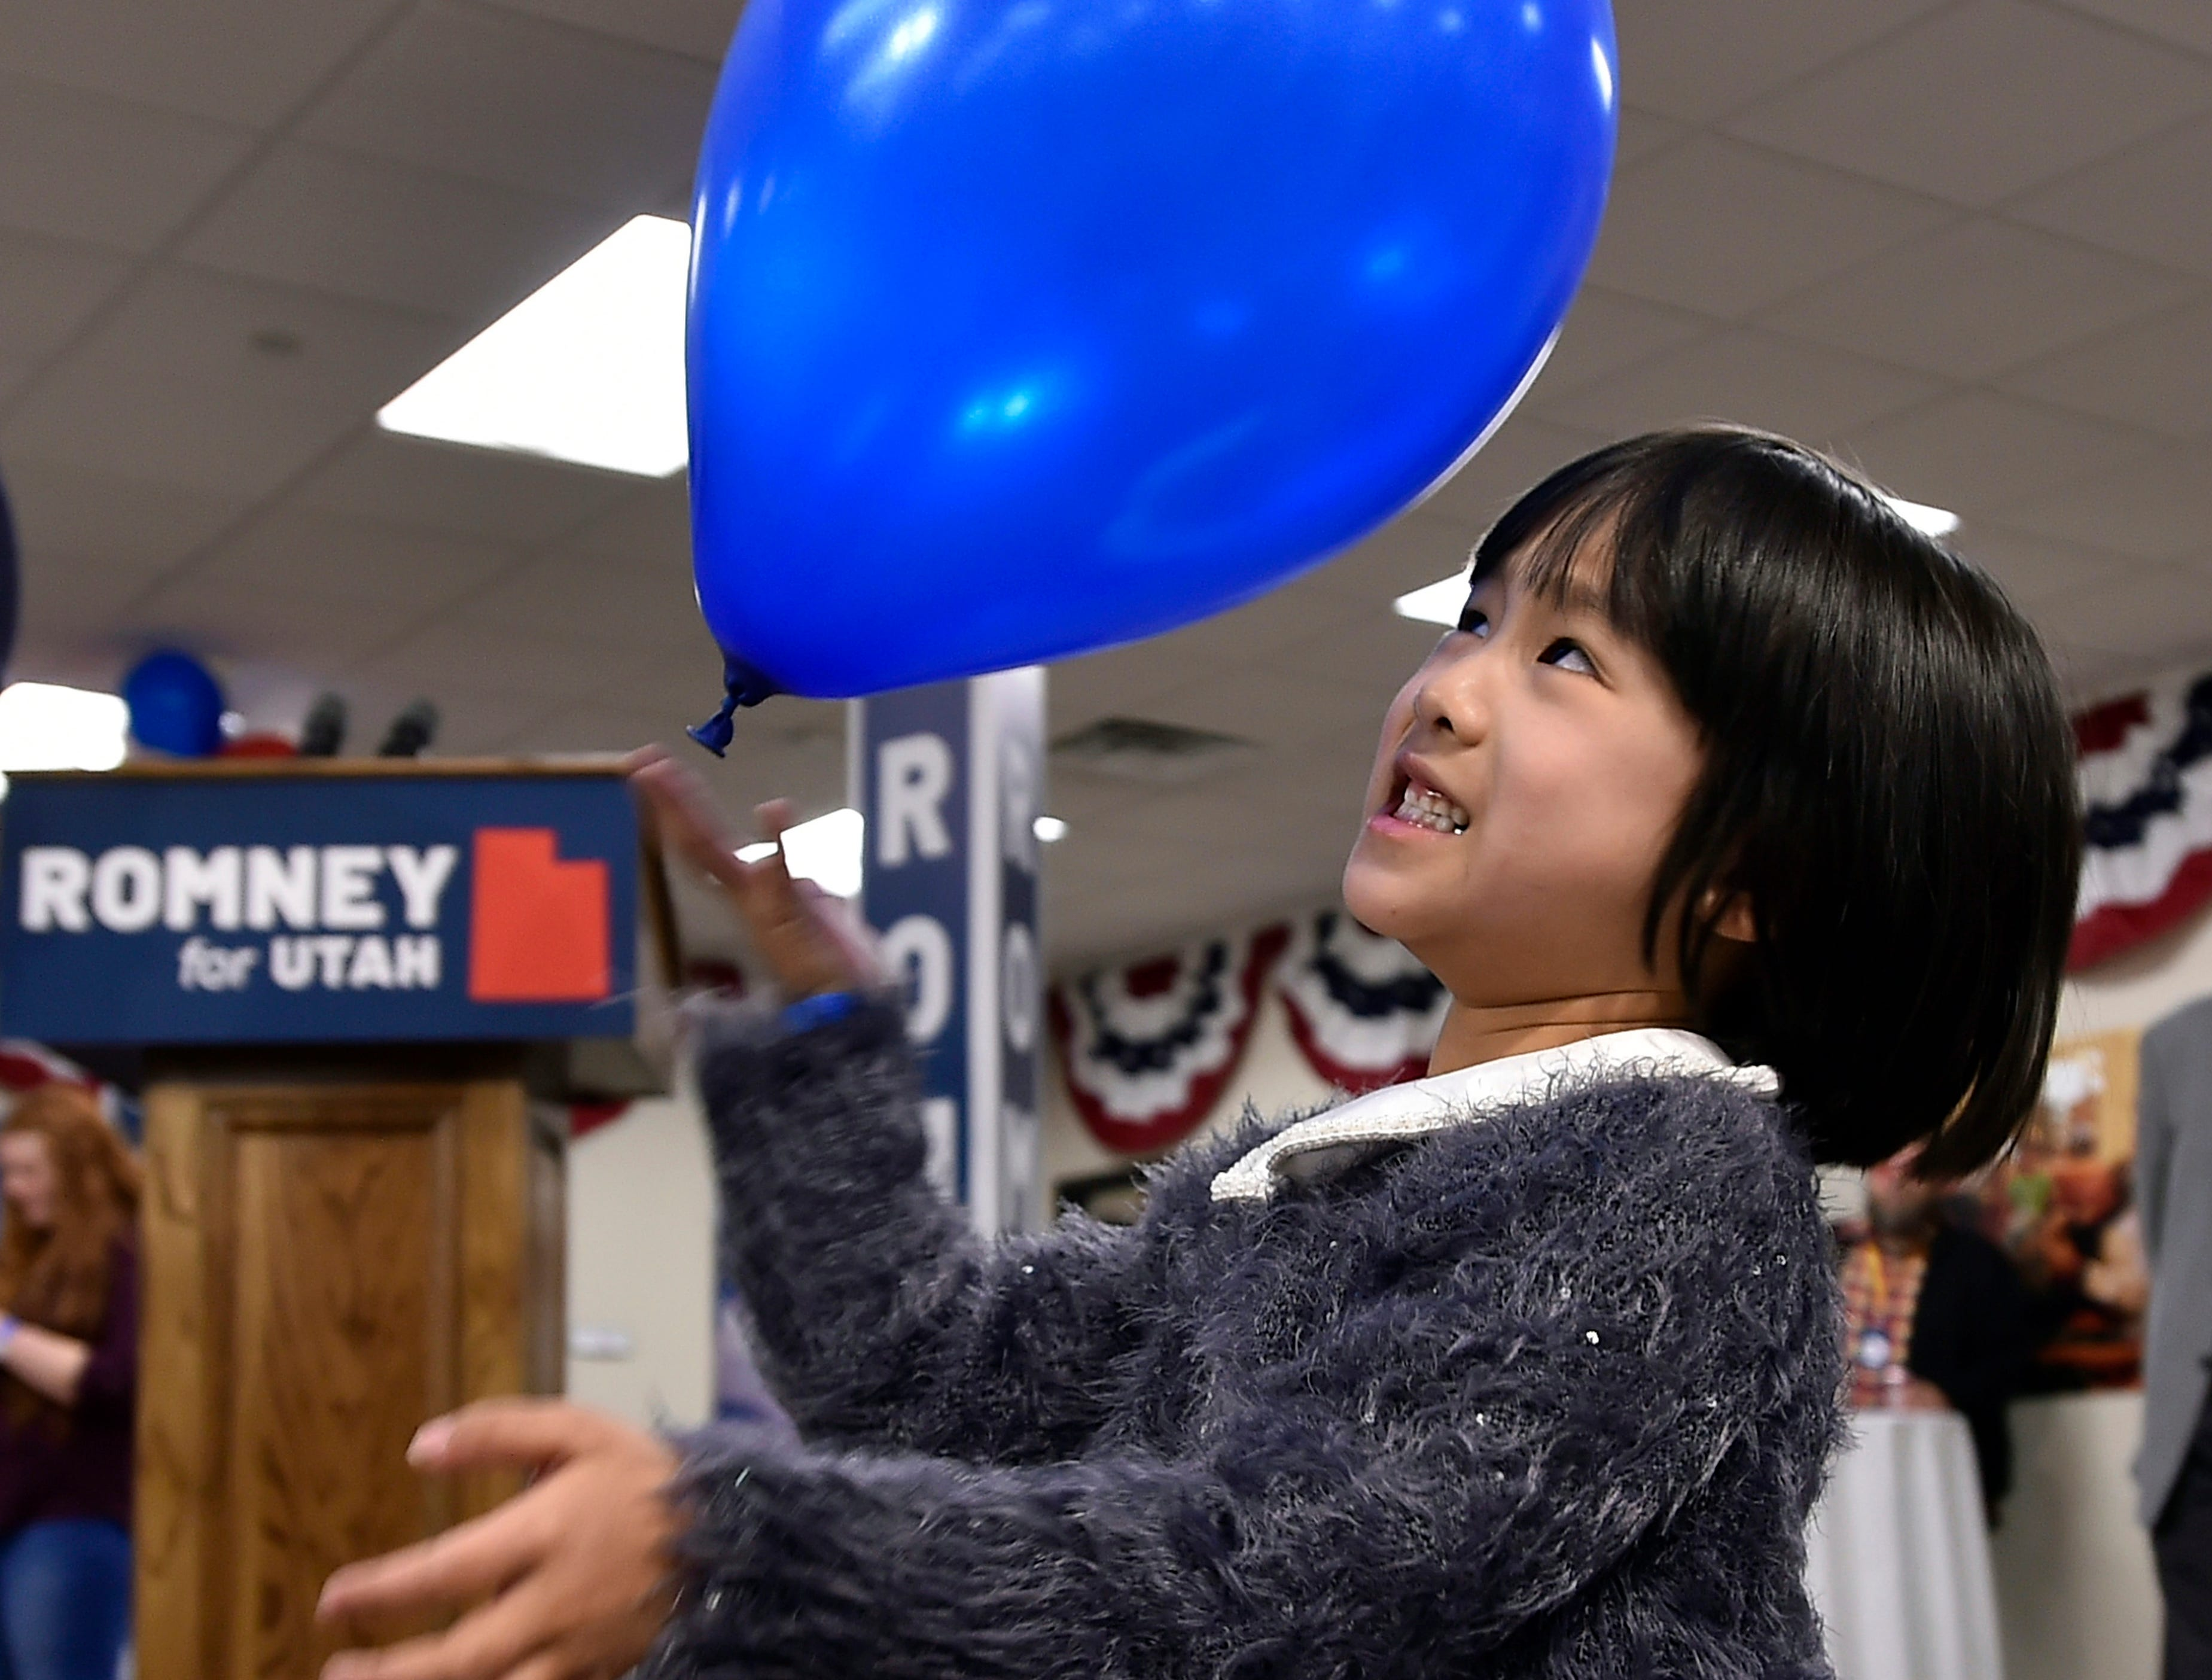 Annabelle Shaw, 5, plays while her parents who are supporters of Utah Republican U.S. Senate candidate Mitt Romney, await word on election results at a gathering in Orem on Tuesday, Nov 6, 2018.